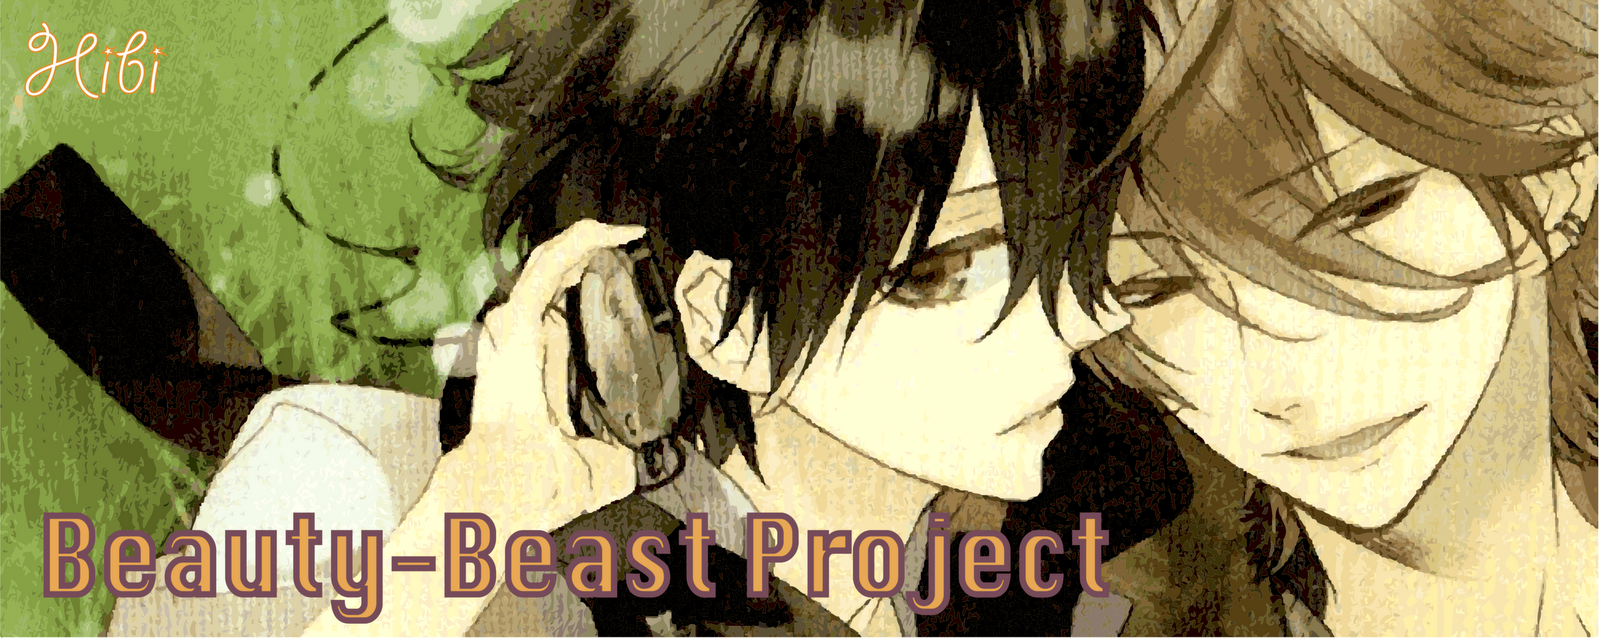 Beauty-Beast Project